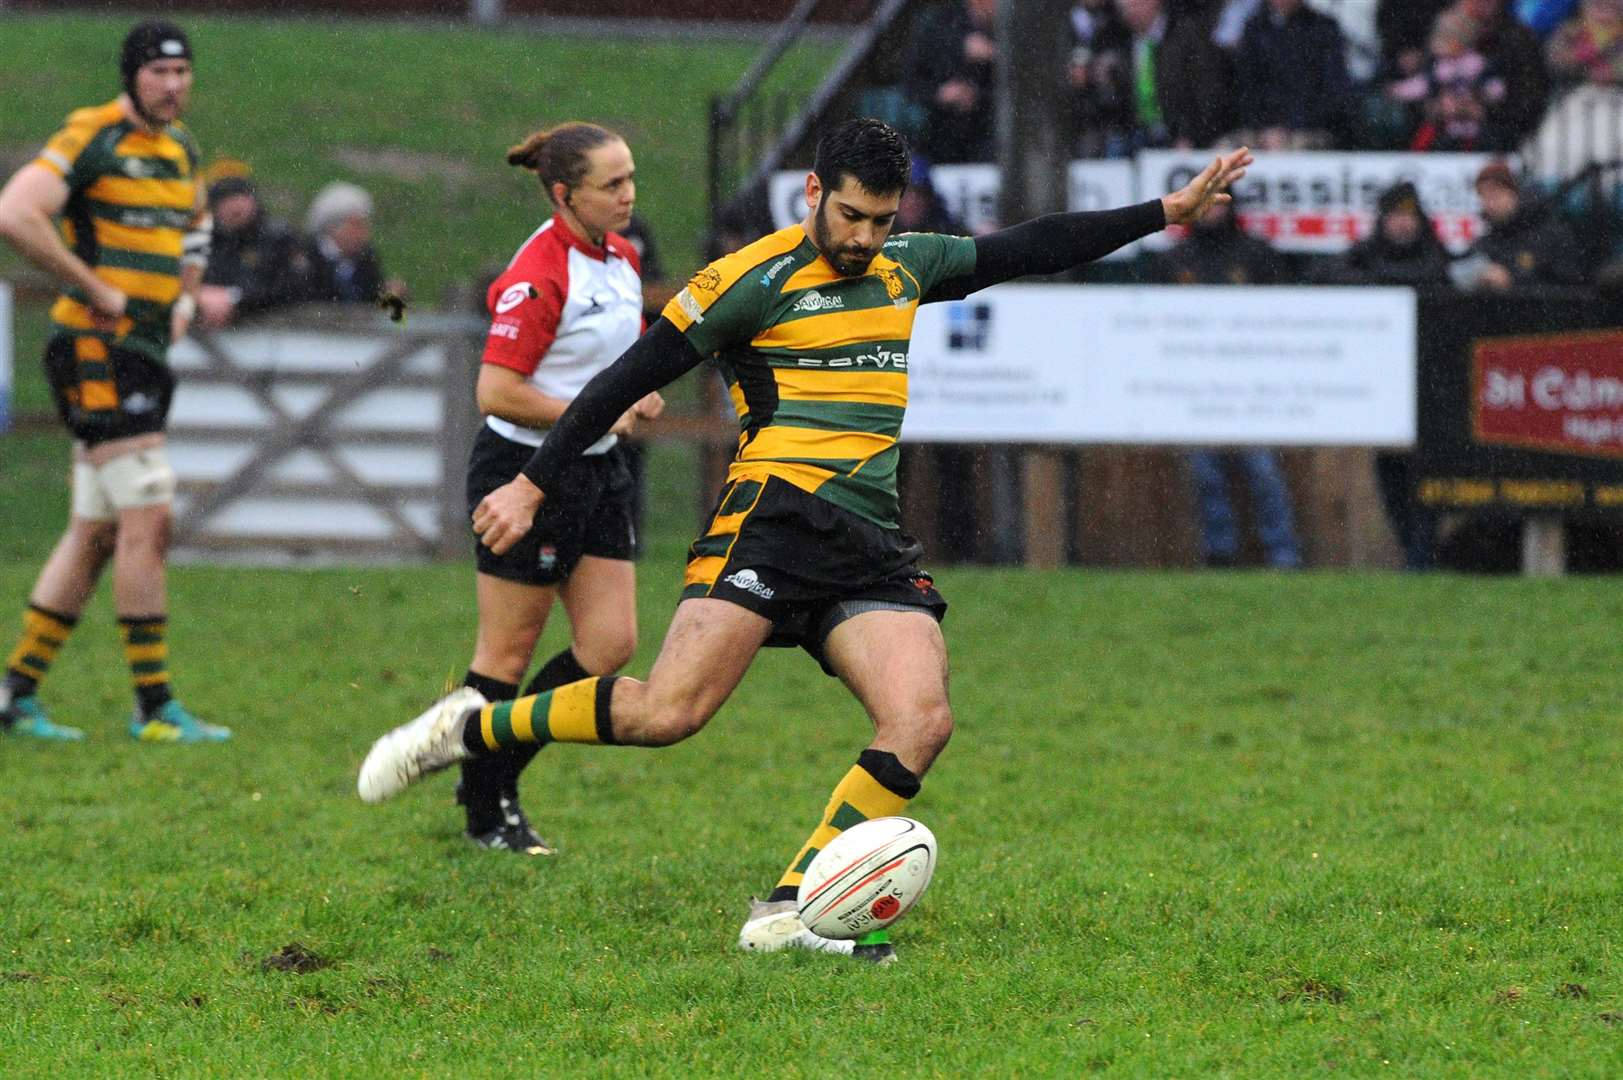 RUGBY - Bury St Edmunds v Cantebury..Pictured: Franco Catuogno...PICTURE: Mecha Morton. (5877053)